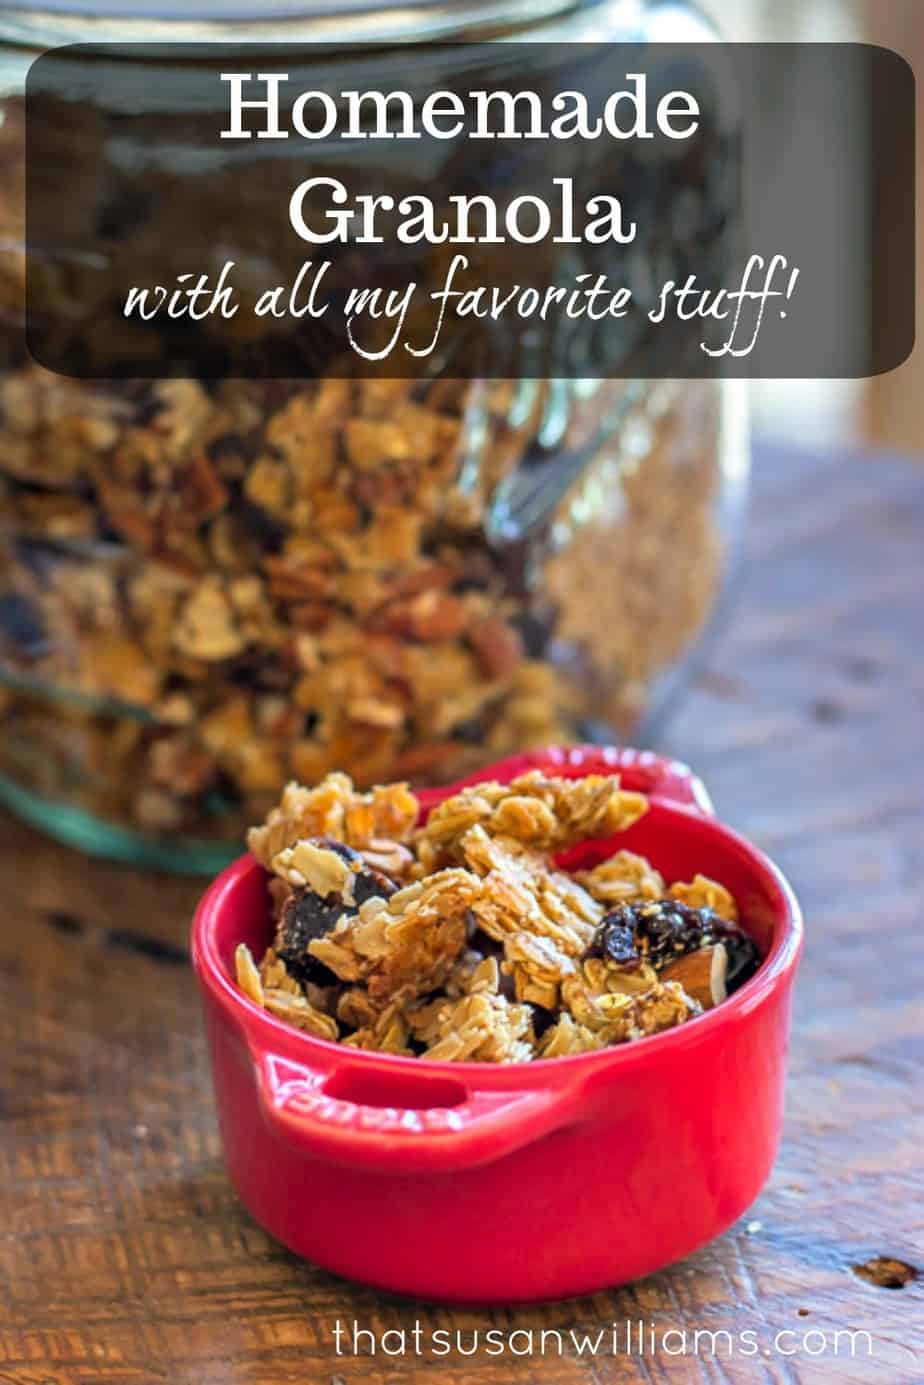 Homemade Granola is the best because you can put all YOUR favorite stuff in it! #granola #homemade #birchermüesli #breakfast